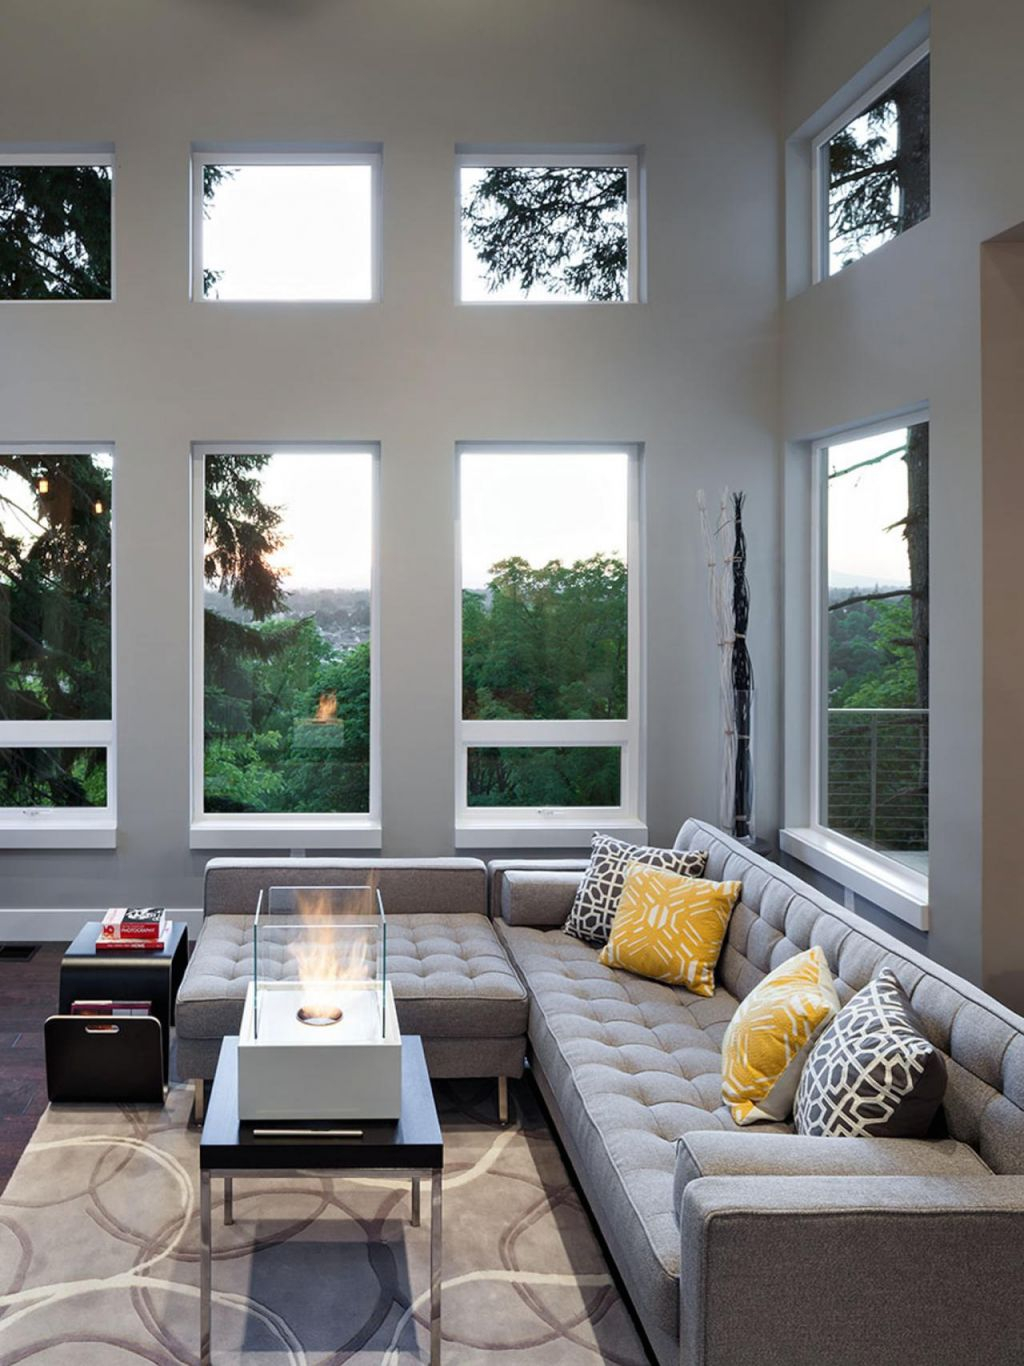 12 Living Room Ideas For A Grey Sectional | Hgtv's Decorating in Beautiful Modern Living Room Furniture Ideas